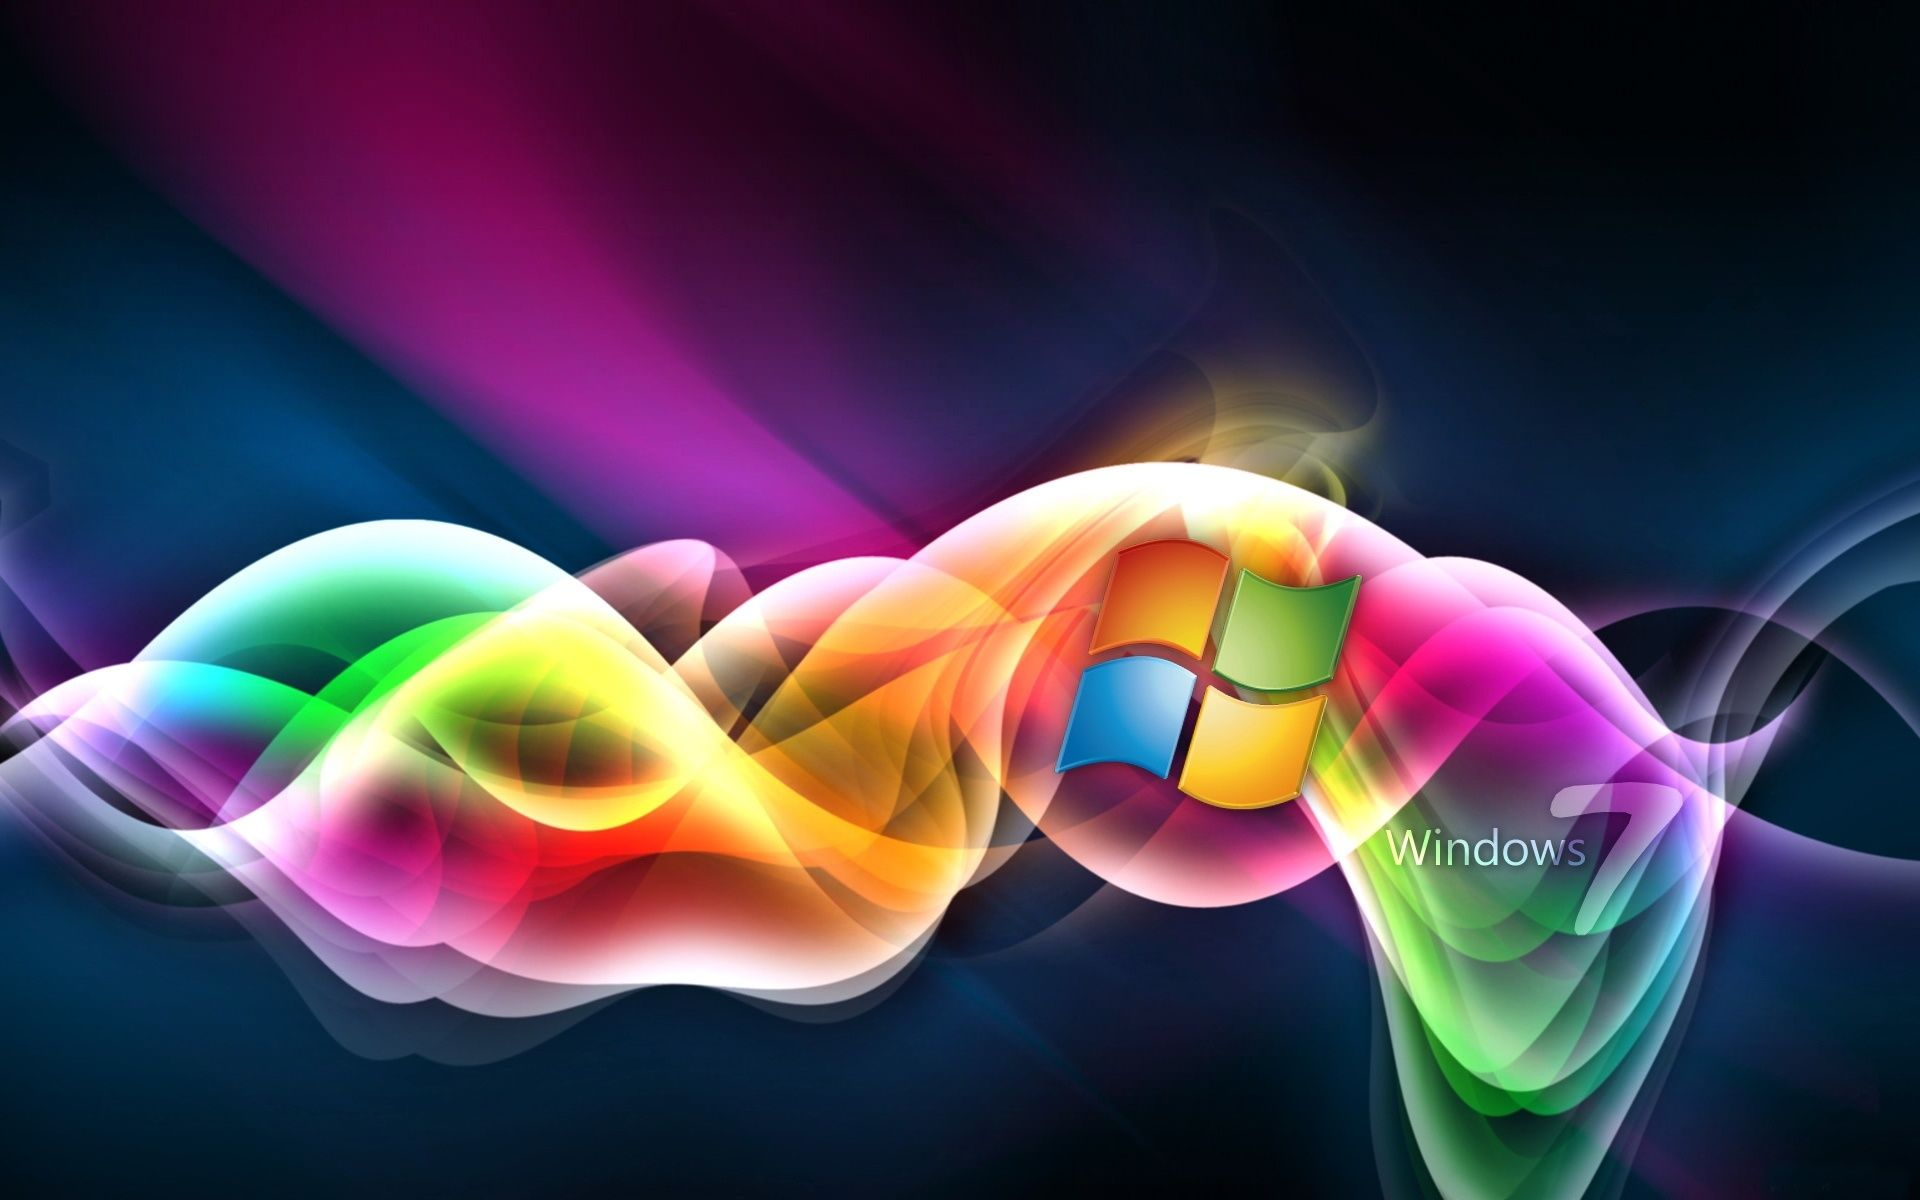 3D Animated Wallpaper For Windows 7